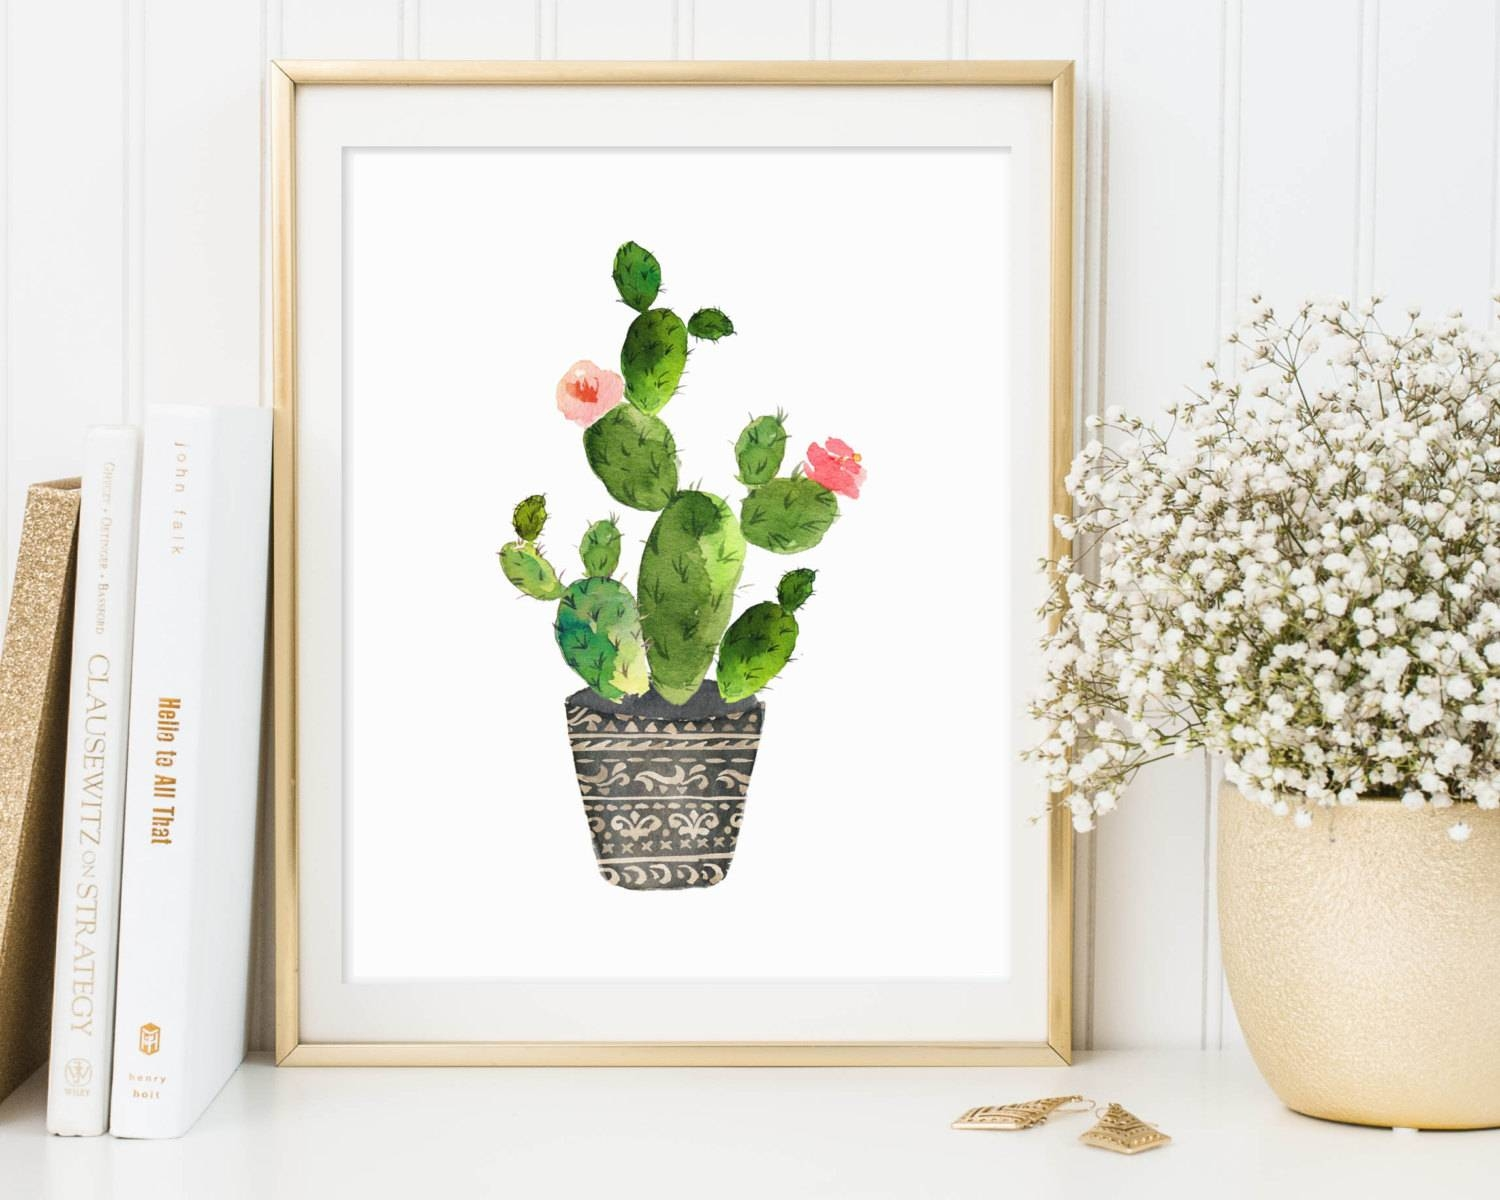 Cactus Print Cactus Printable Cactus Wall Art Botanical Intended For Current Botanical Prints Etsy (View 7 of 20)